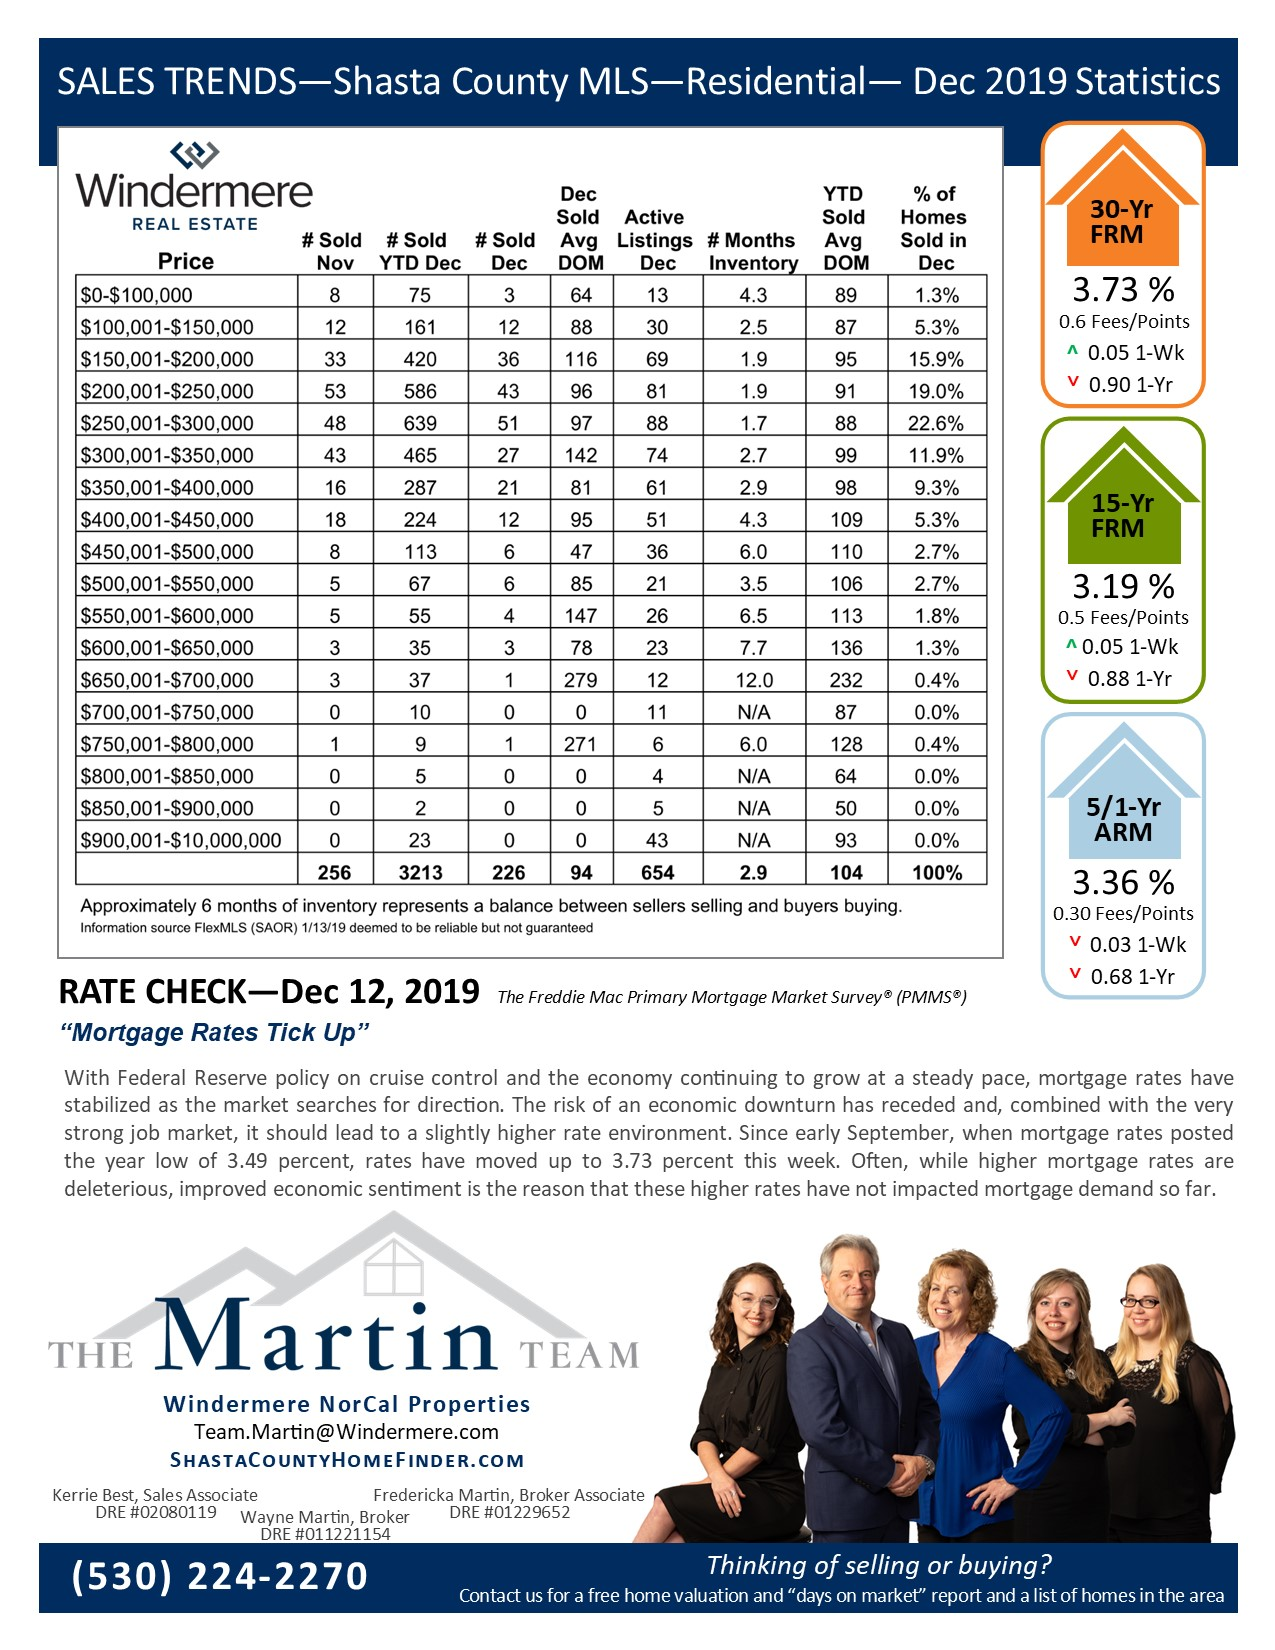 Sales Trends Reports Dec 2019. Mortgage rates and statistics on residential sales for Dec 2019.